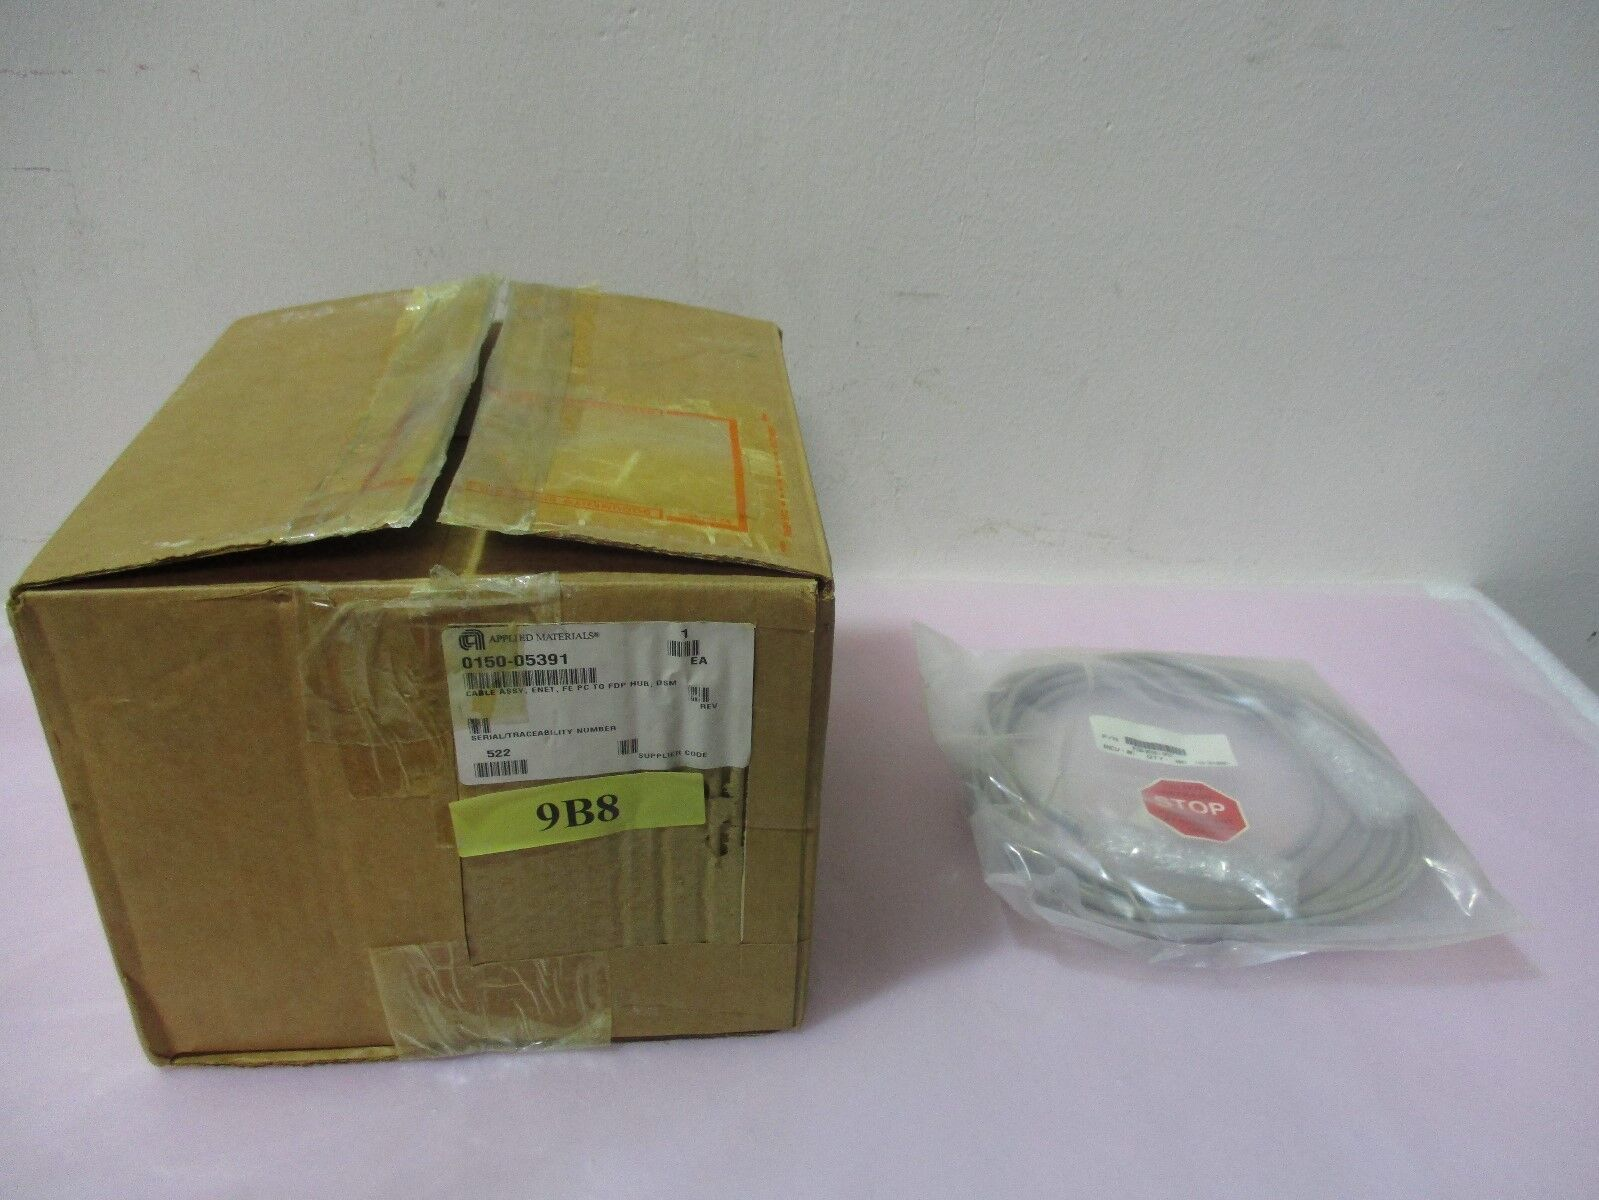 AMAT 0150-05391 Rev.001, Cable Assembly, ENET, FE PC to FDP Hub, DSM. 417896